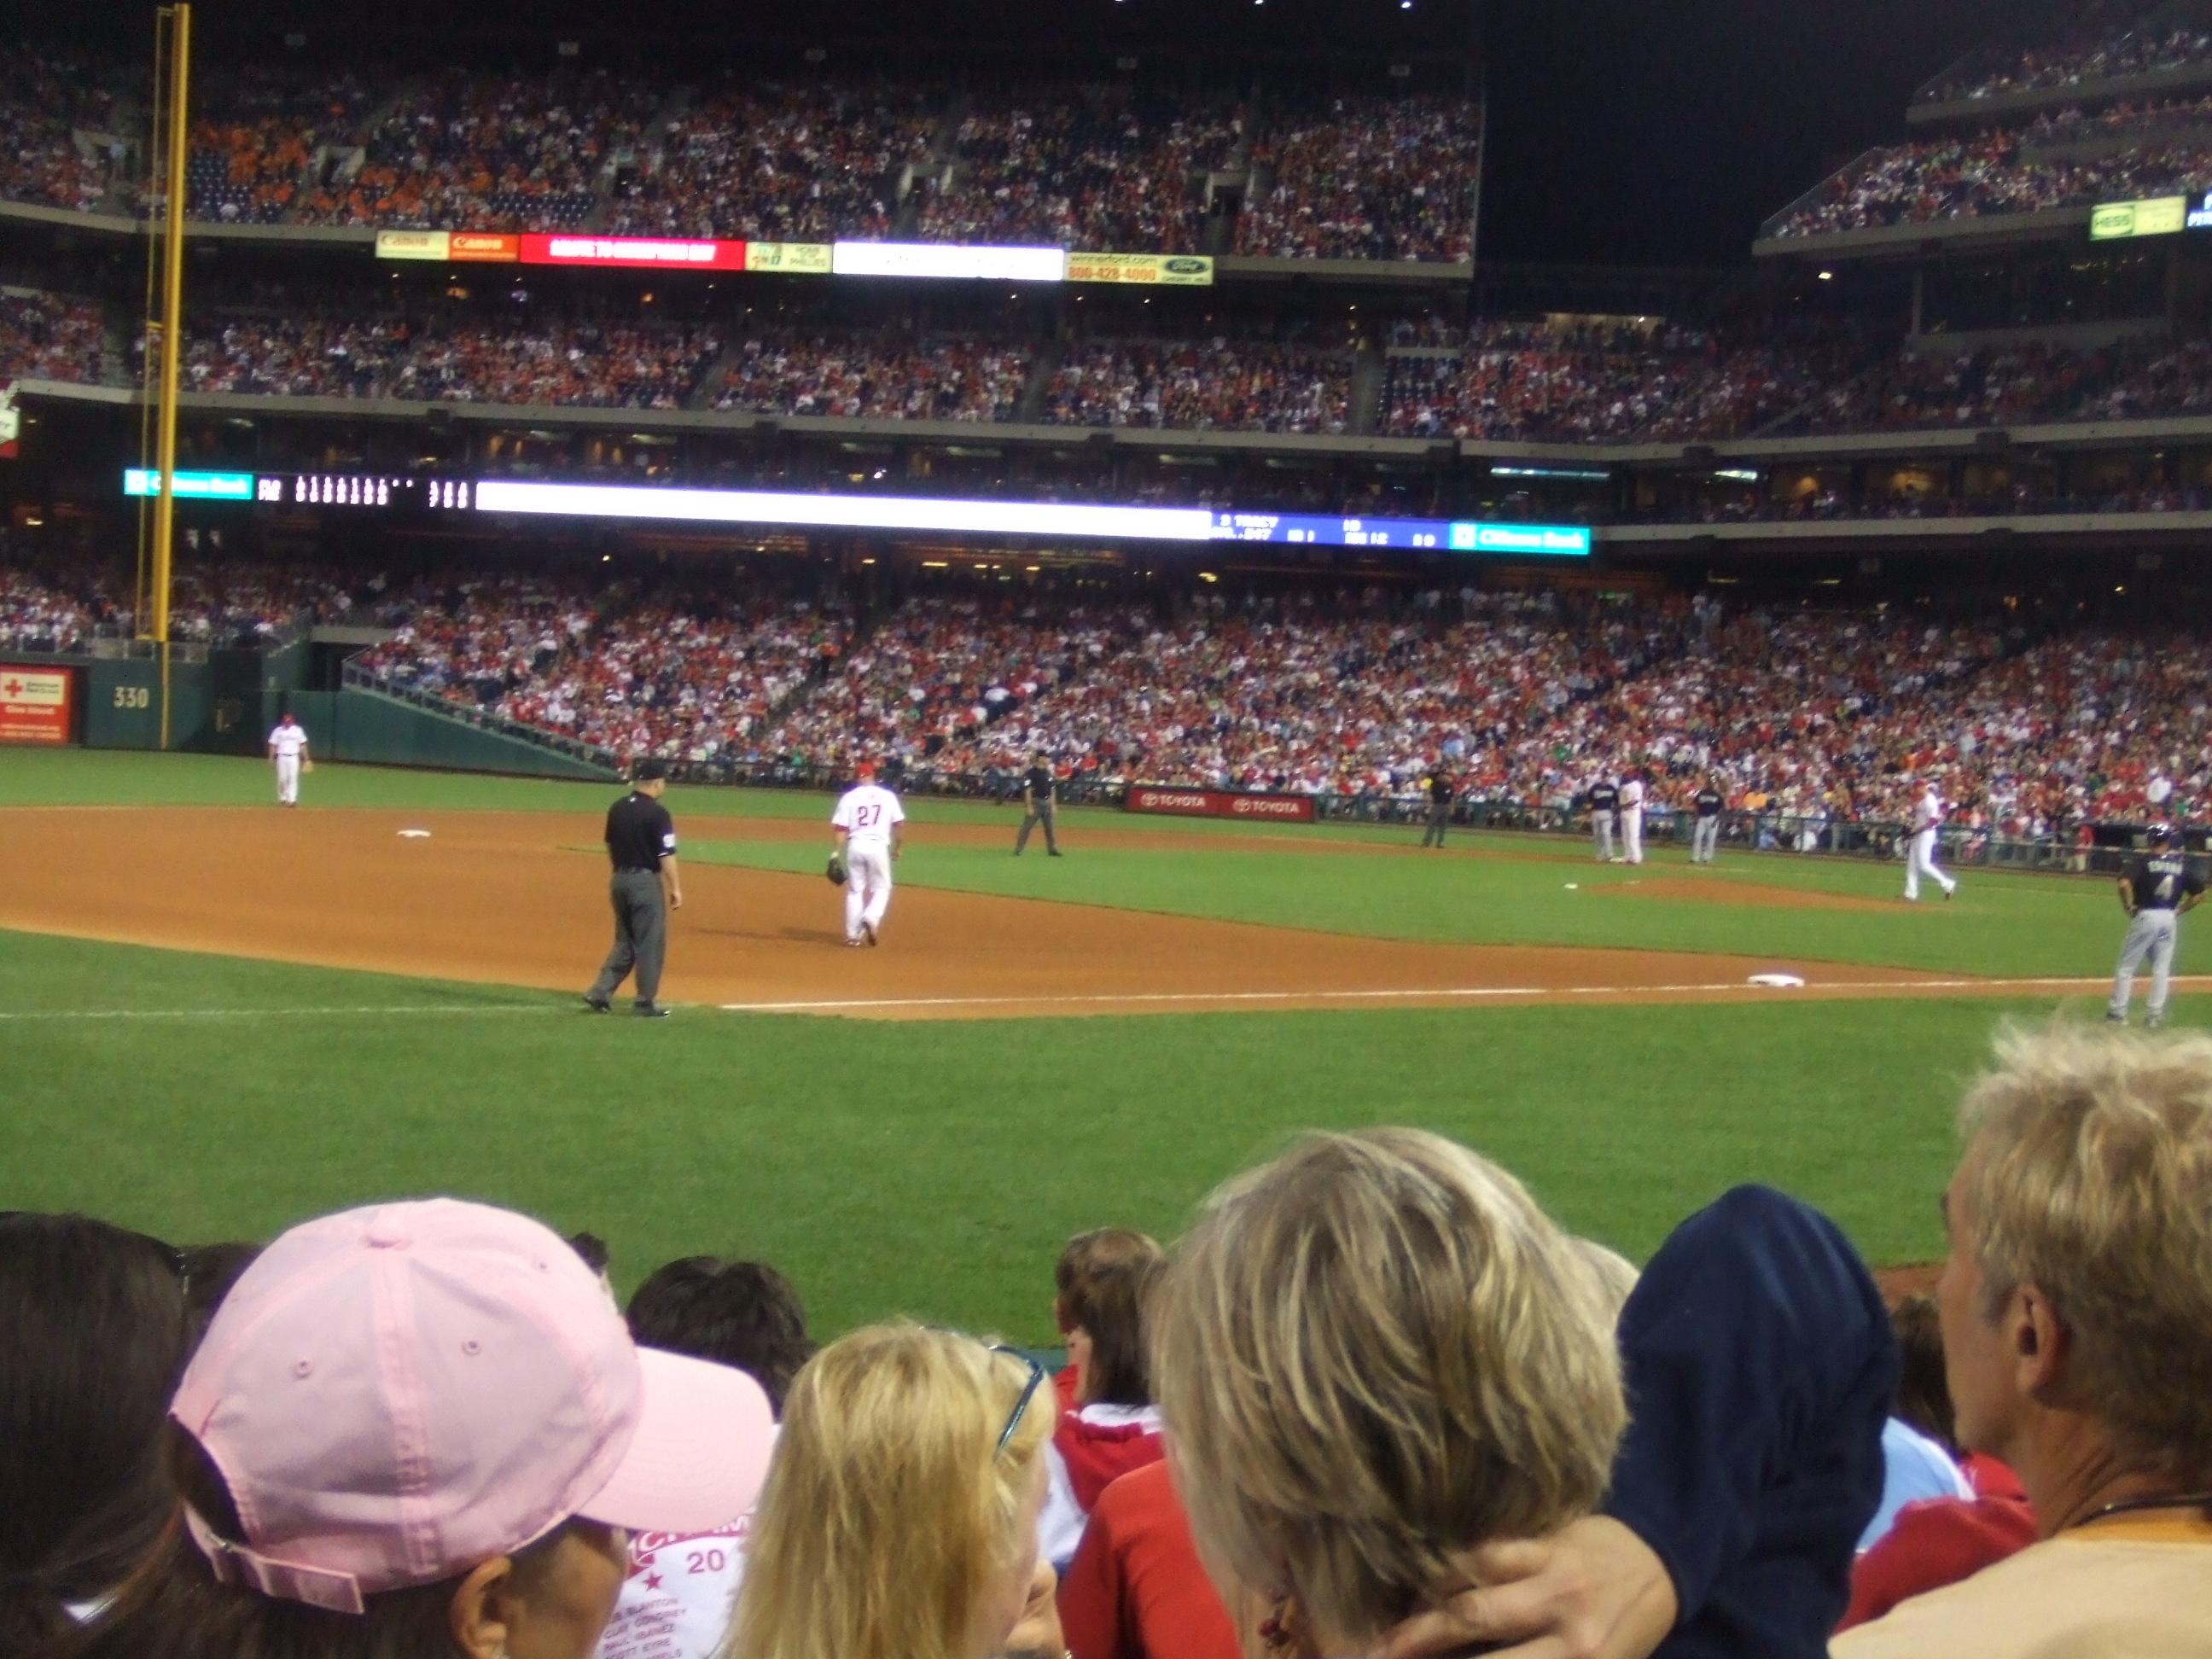 Citizens Bank Park Section 134 Row 8 Seat 11